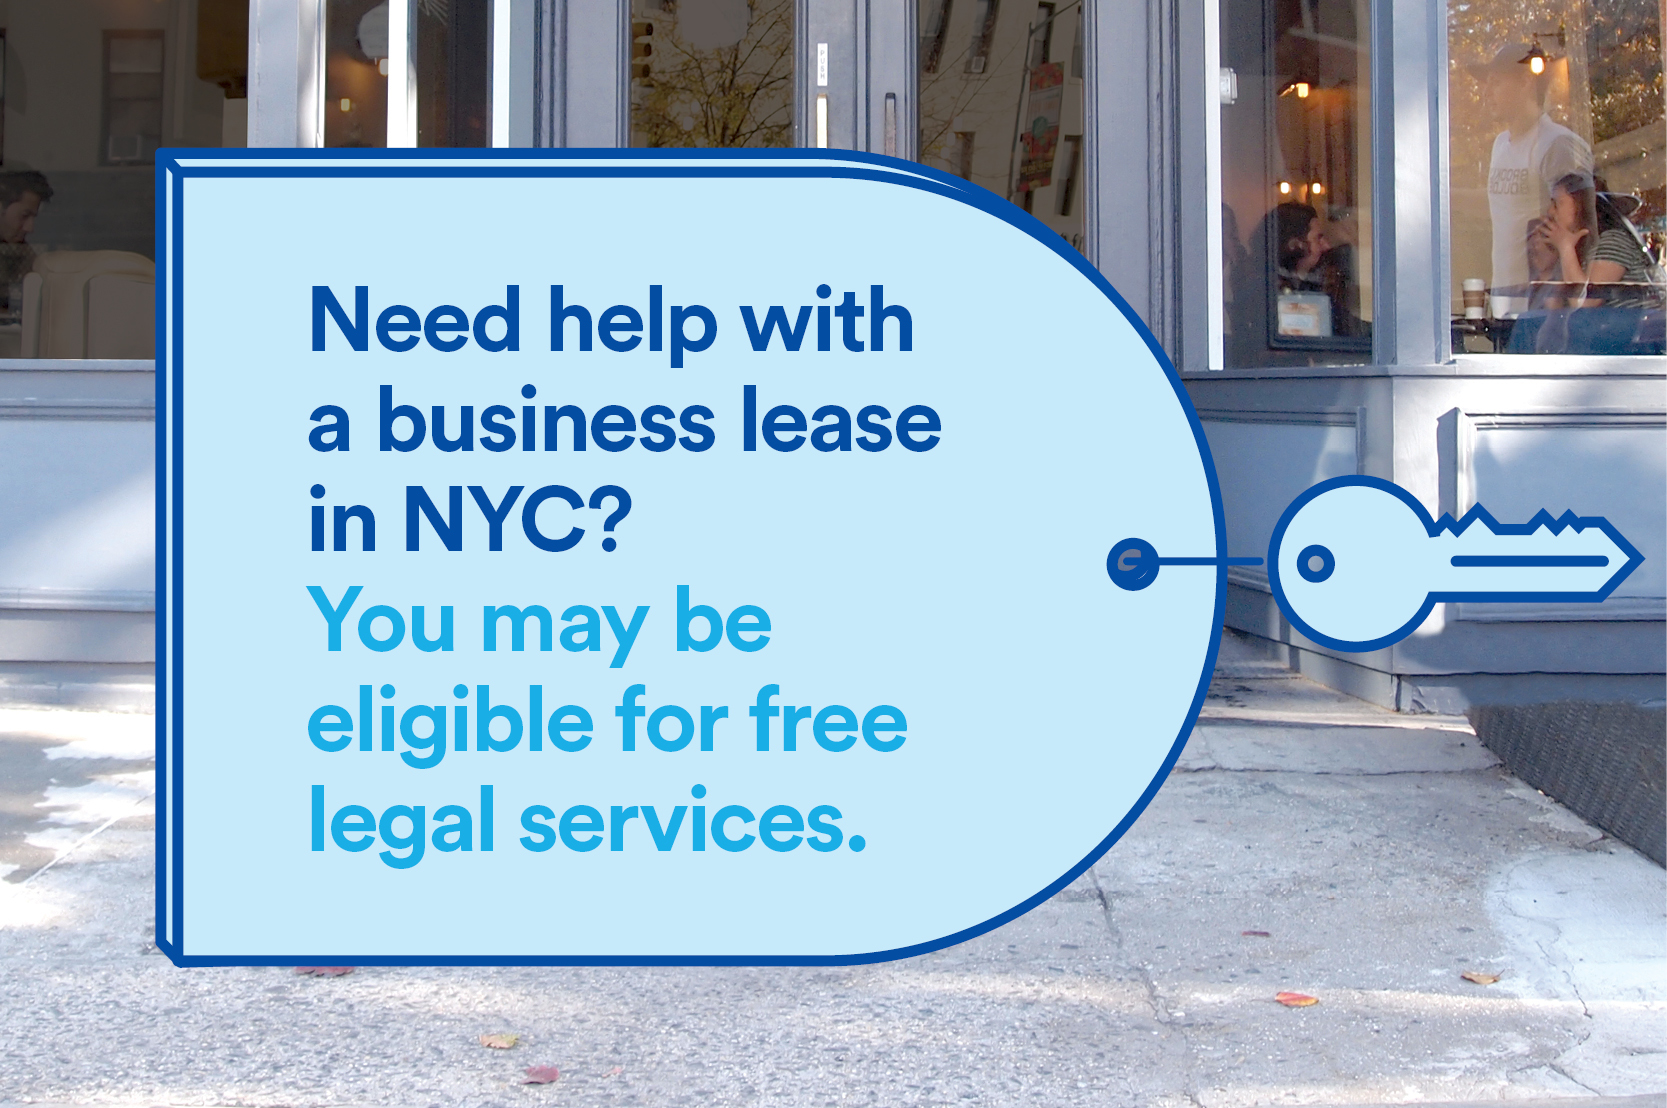 Need help with a business lease in NYC? You may be eligible for free legal services.